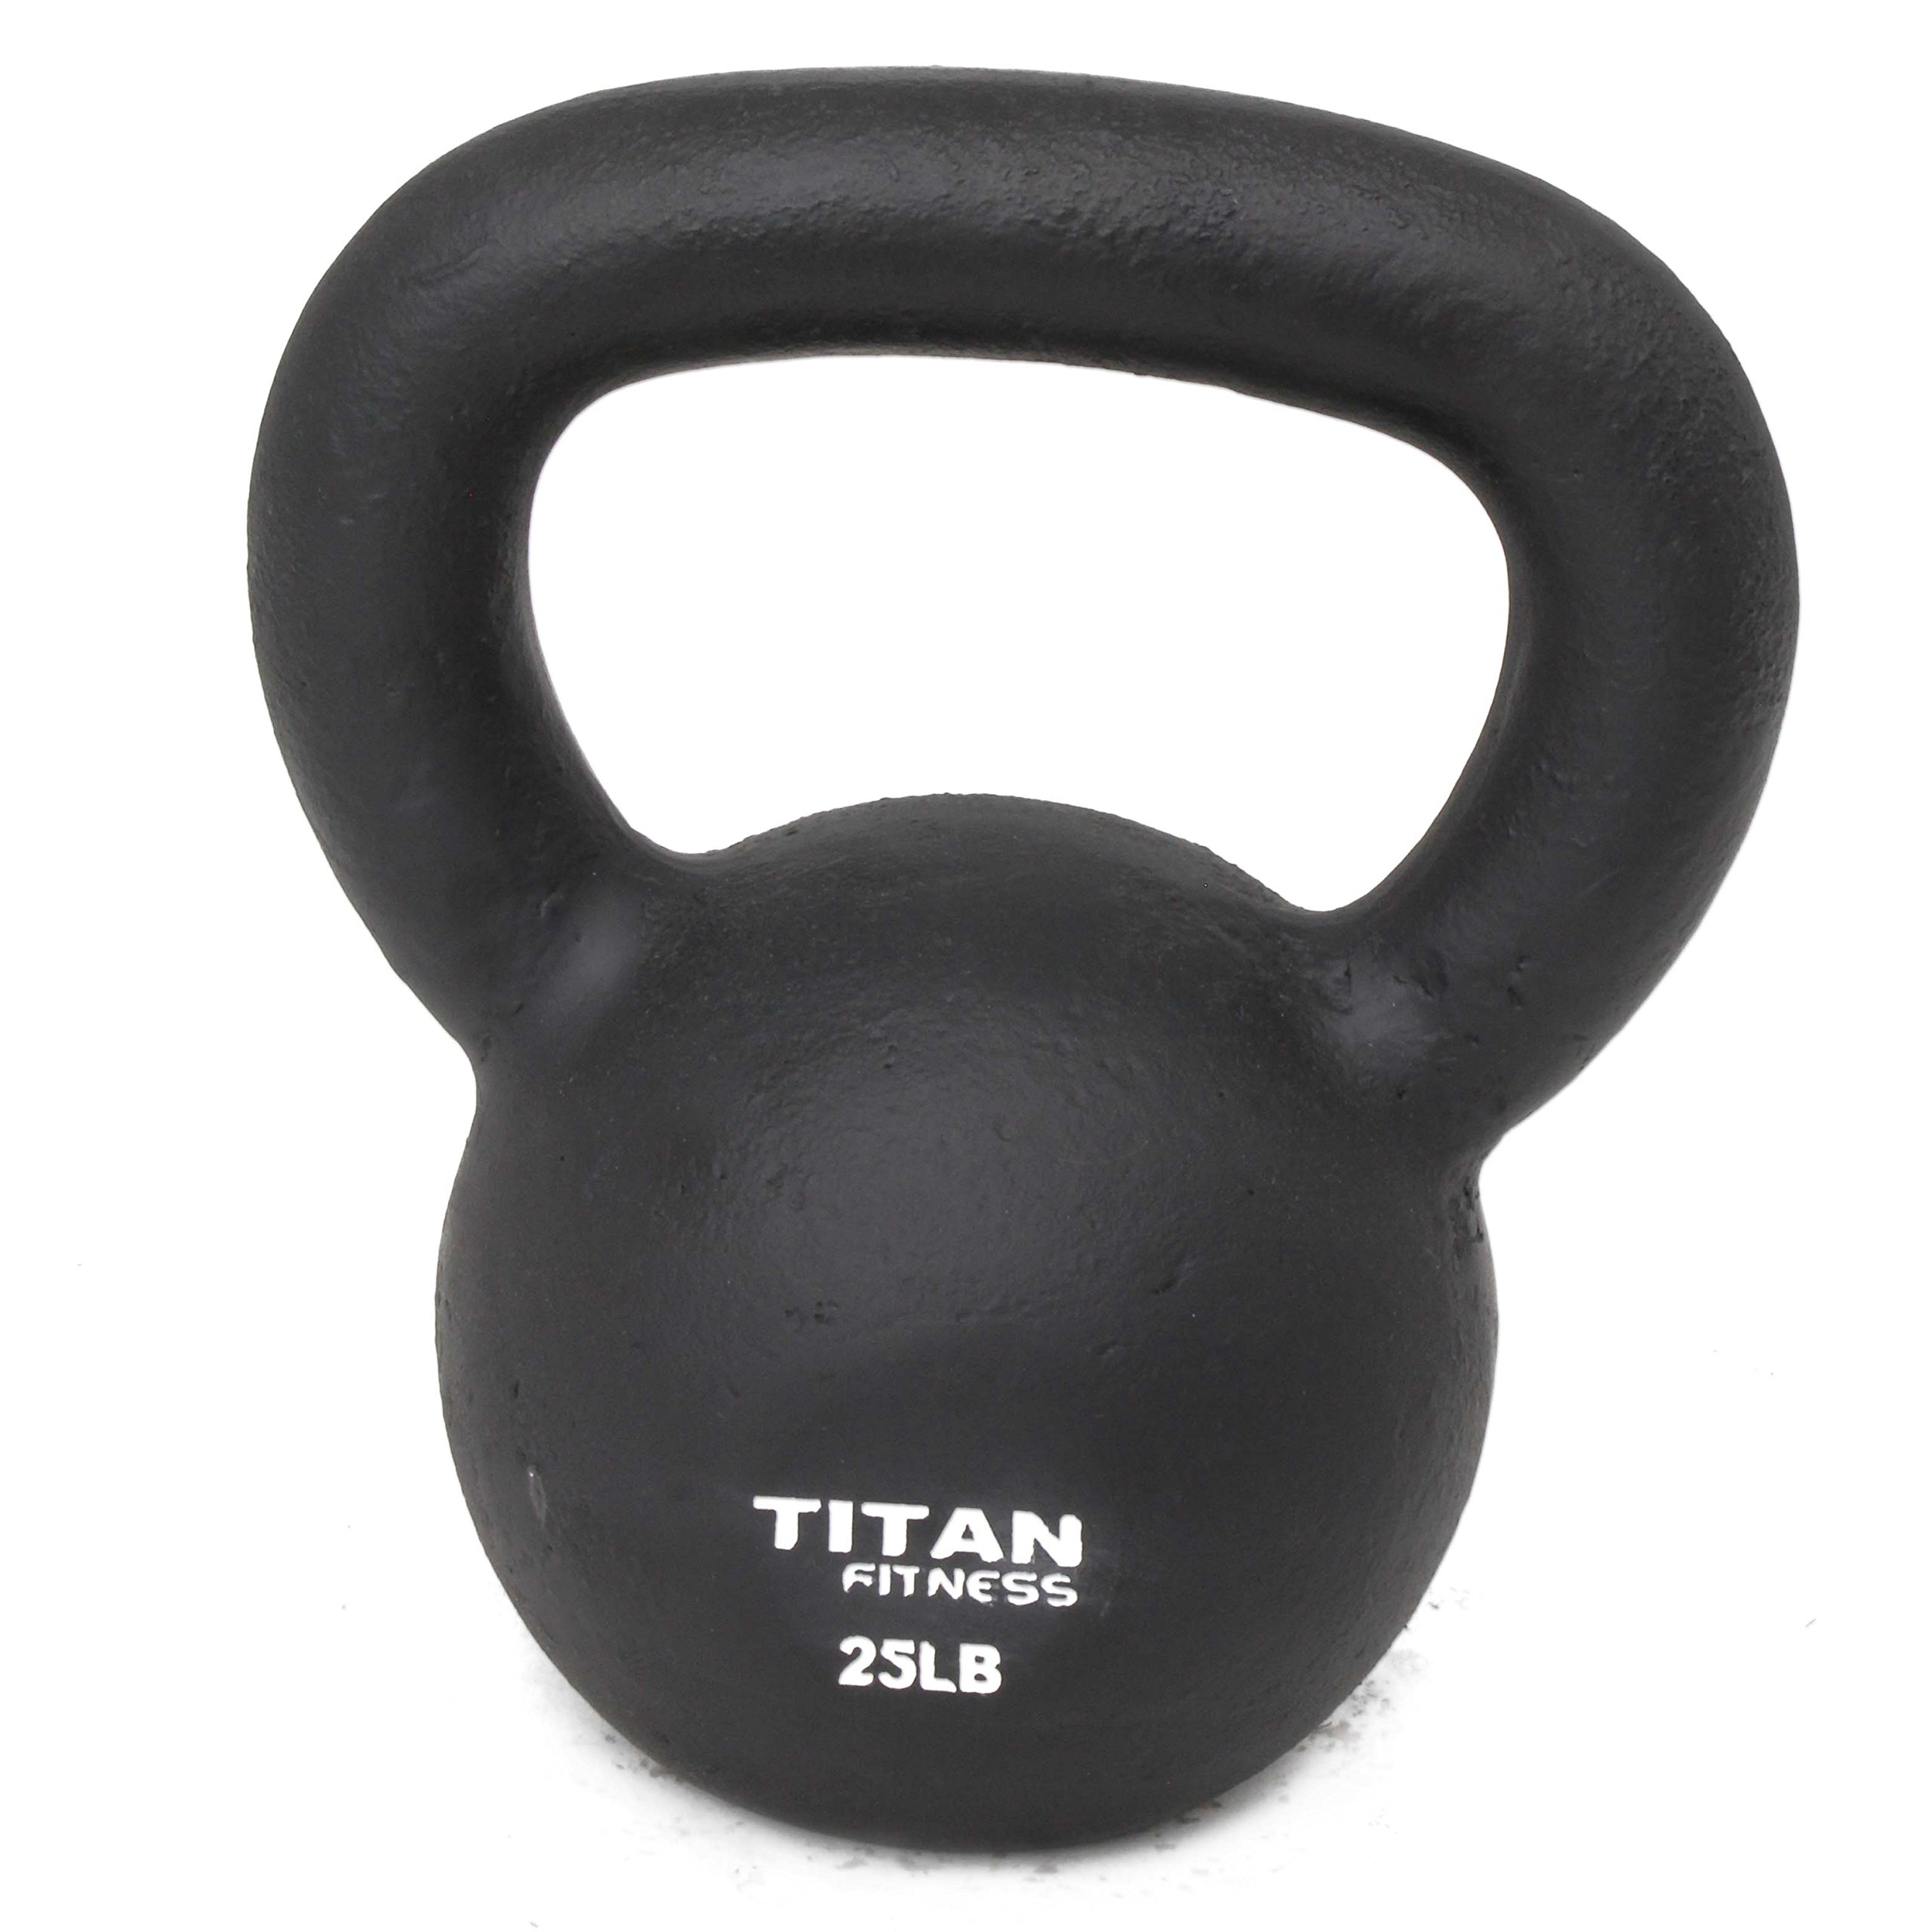 Titan Fitness Cast Iron Kettlebell Weight 25 Lbs Natural Solid Workout Swing by Titan Fitness